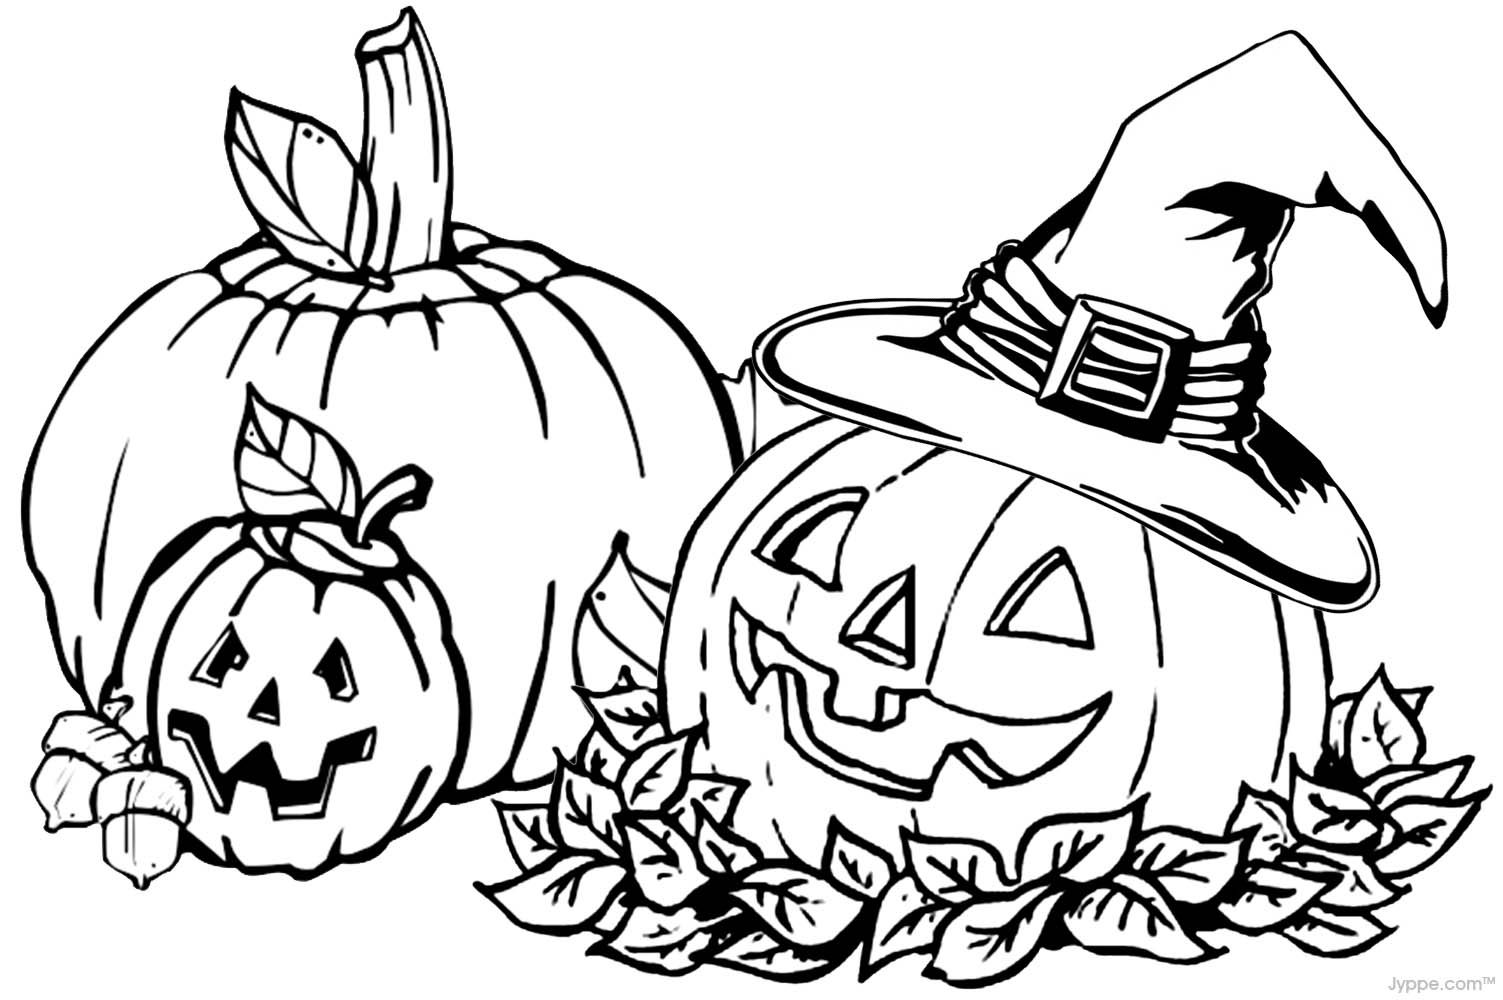 Printable Halloween Coloring Pages For Adults - Coloring Home